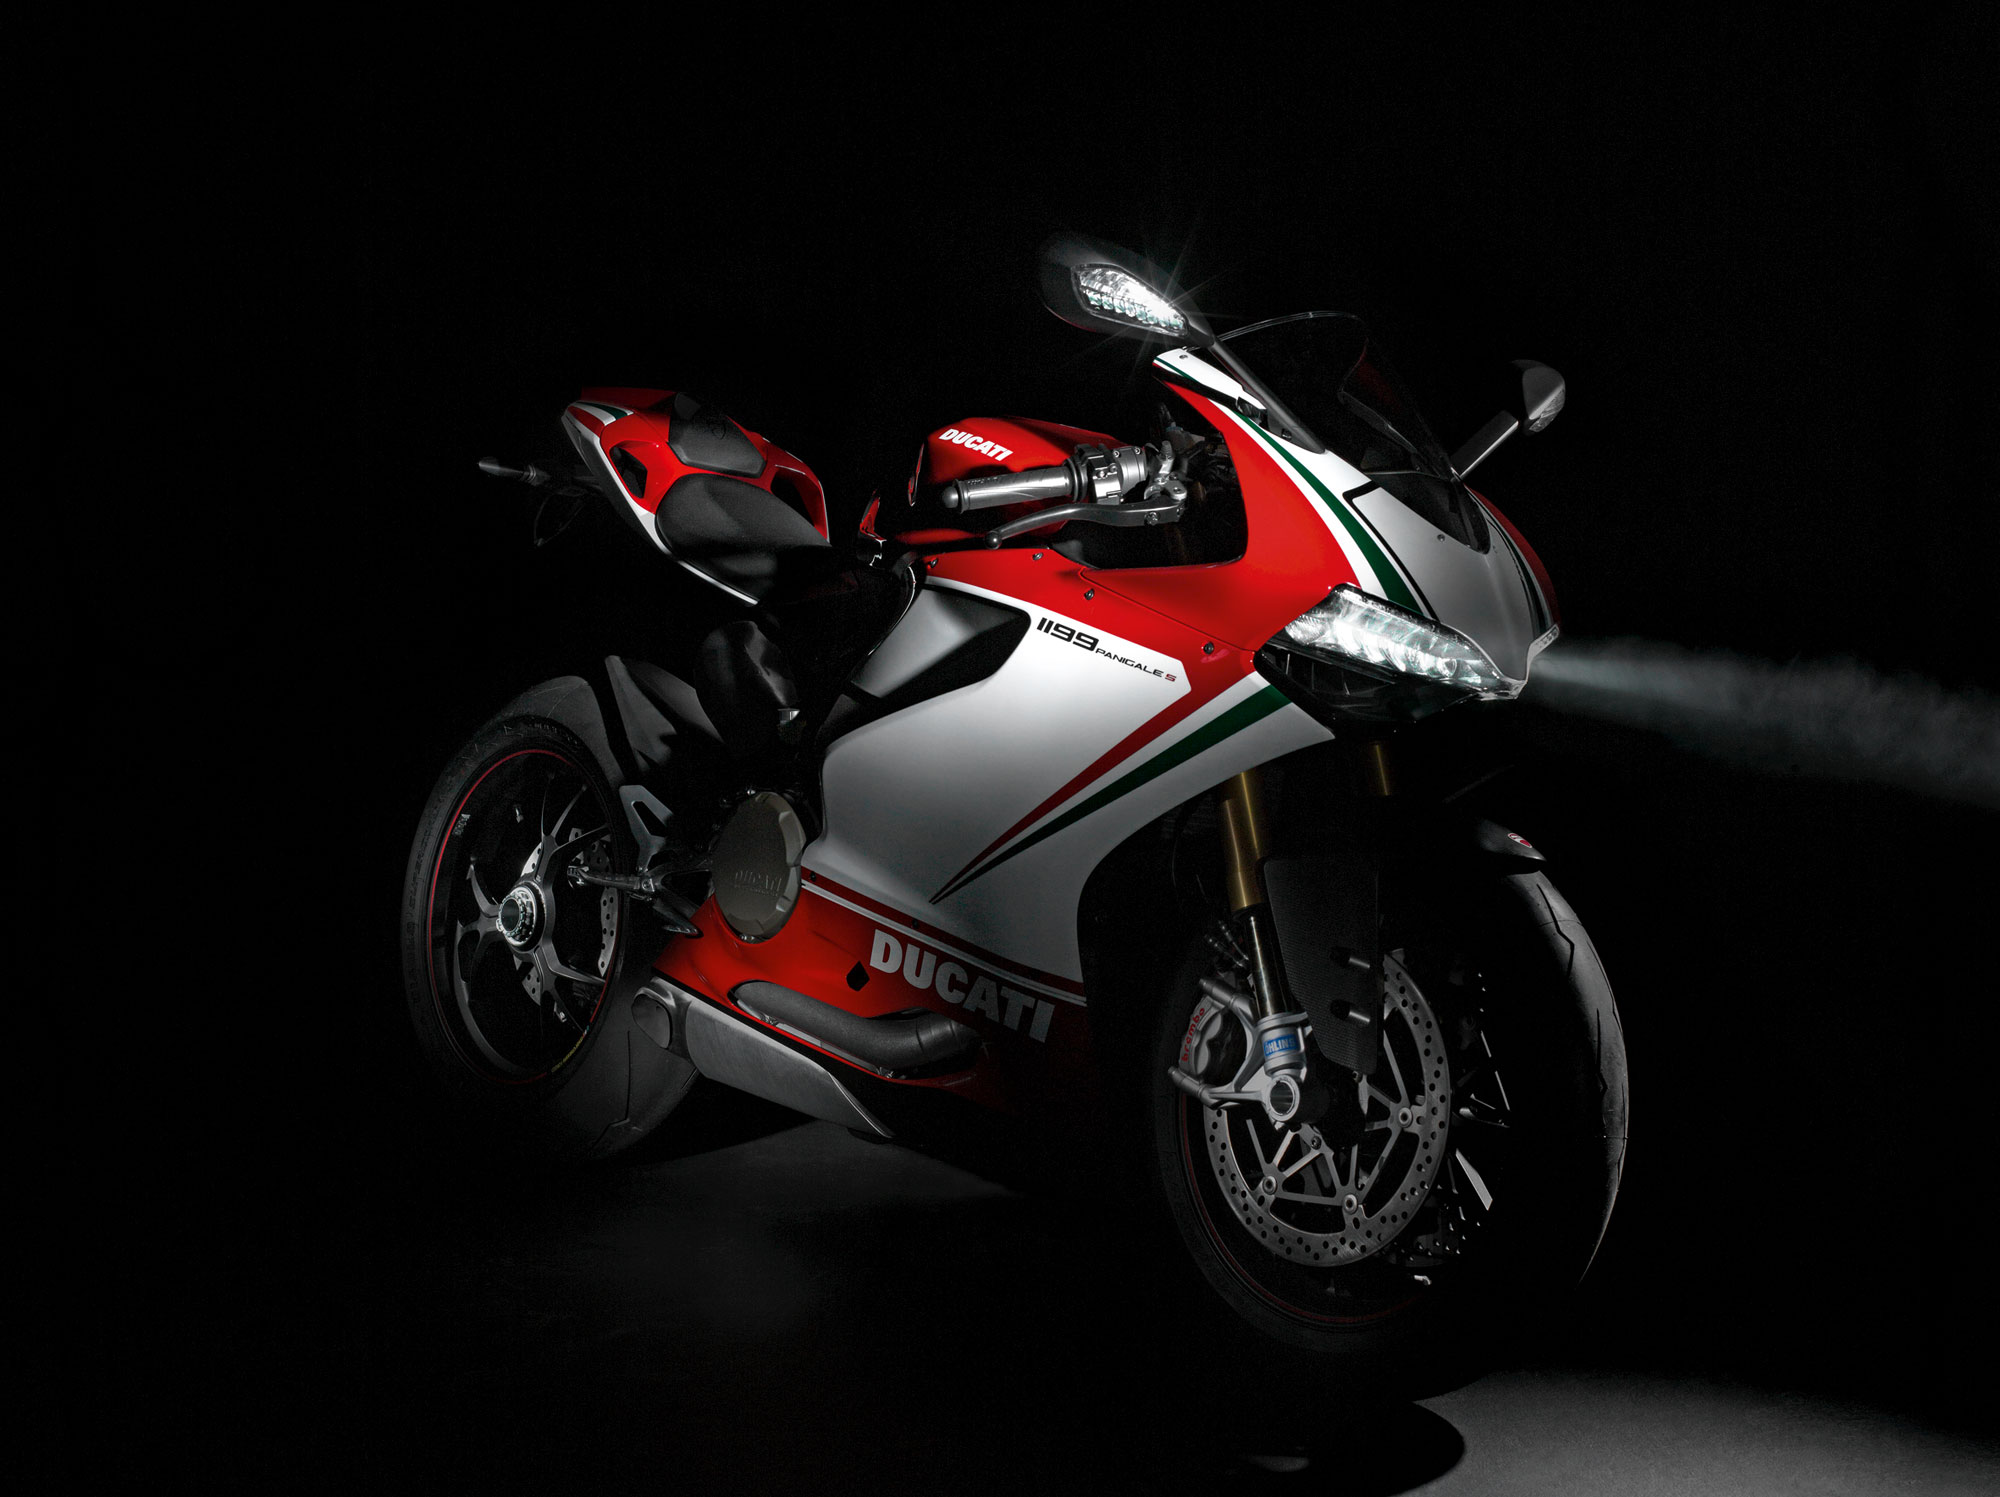 Ducati Superbike 1199 Panigale S 2013 wallpapers #13378